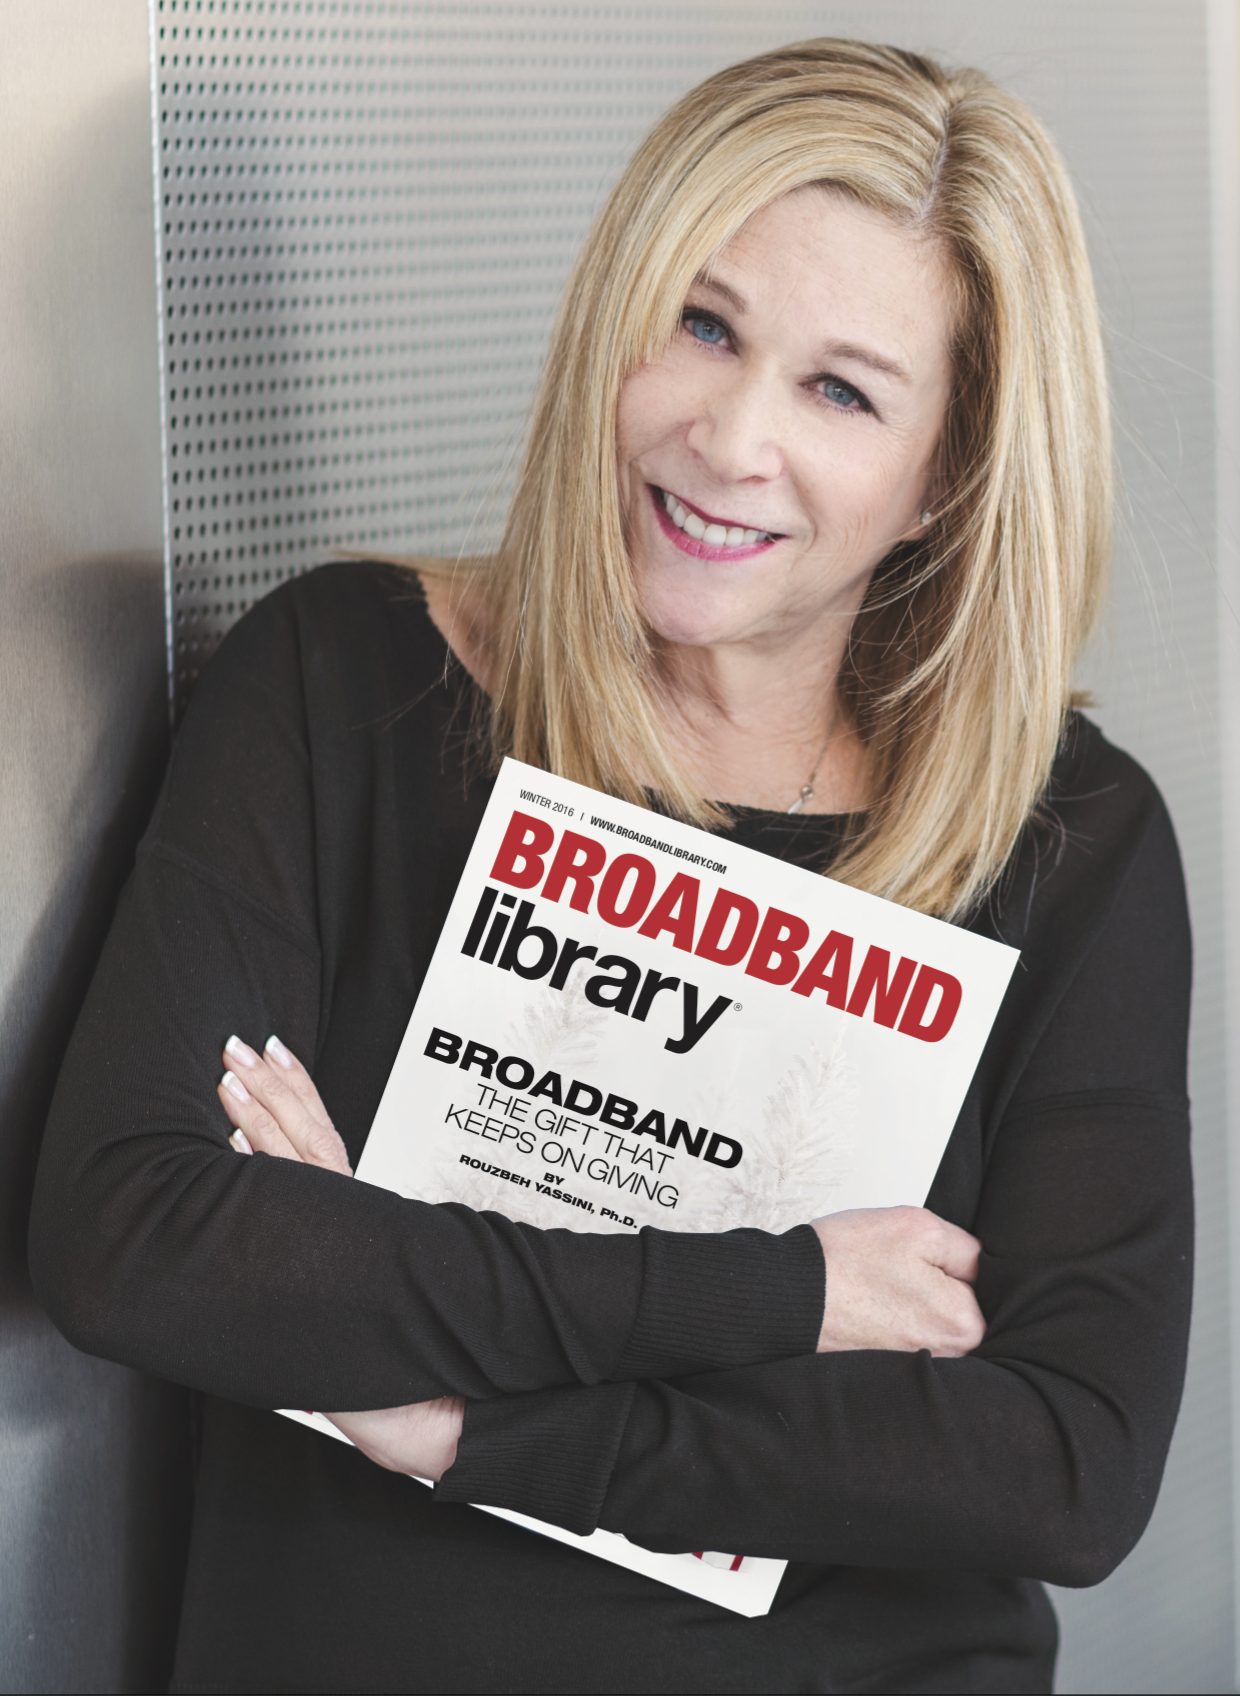 Cathy Wilson, Publisher, Broadband Library